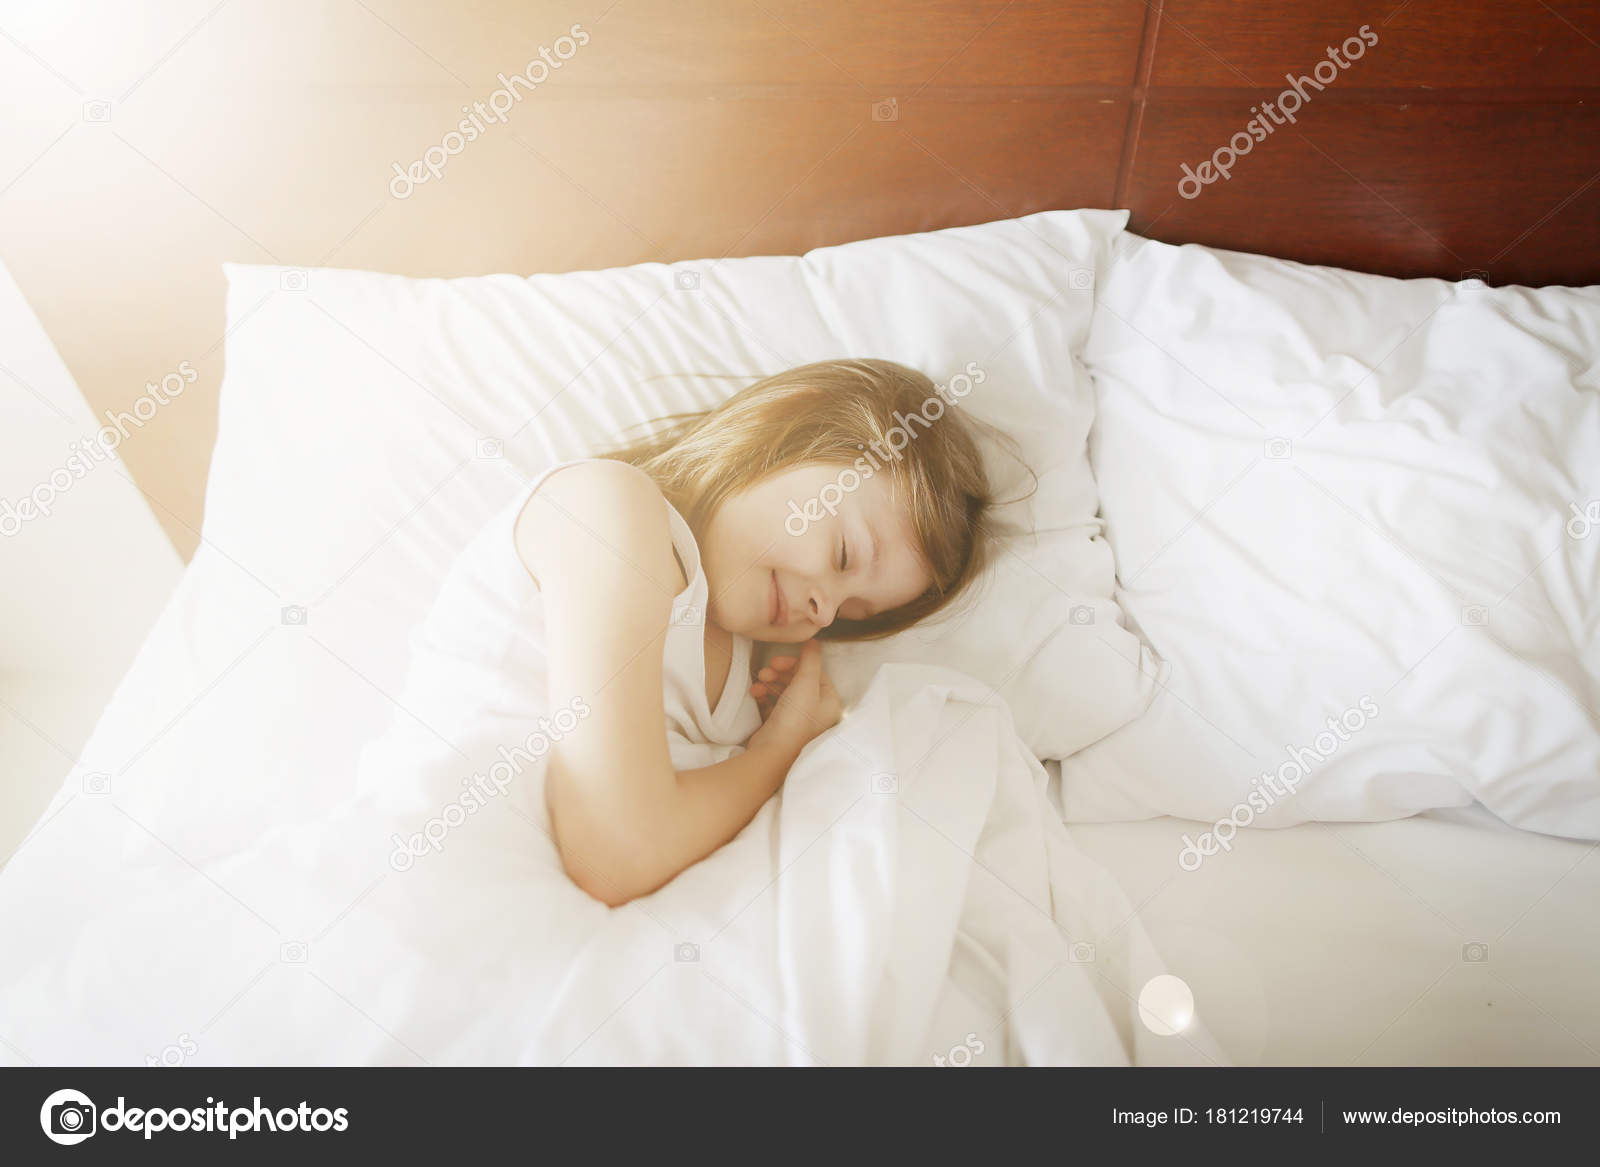 1aac00e8d Beauty sunshine portrait of sleeping kid girl at white bed. concept of  happy childhood